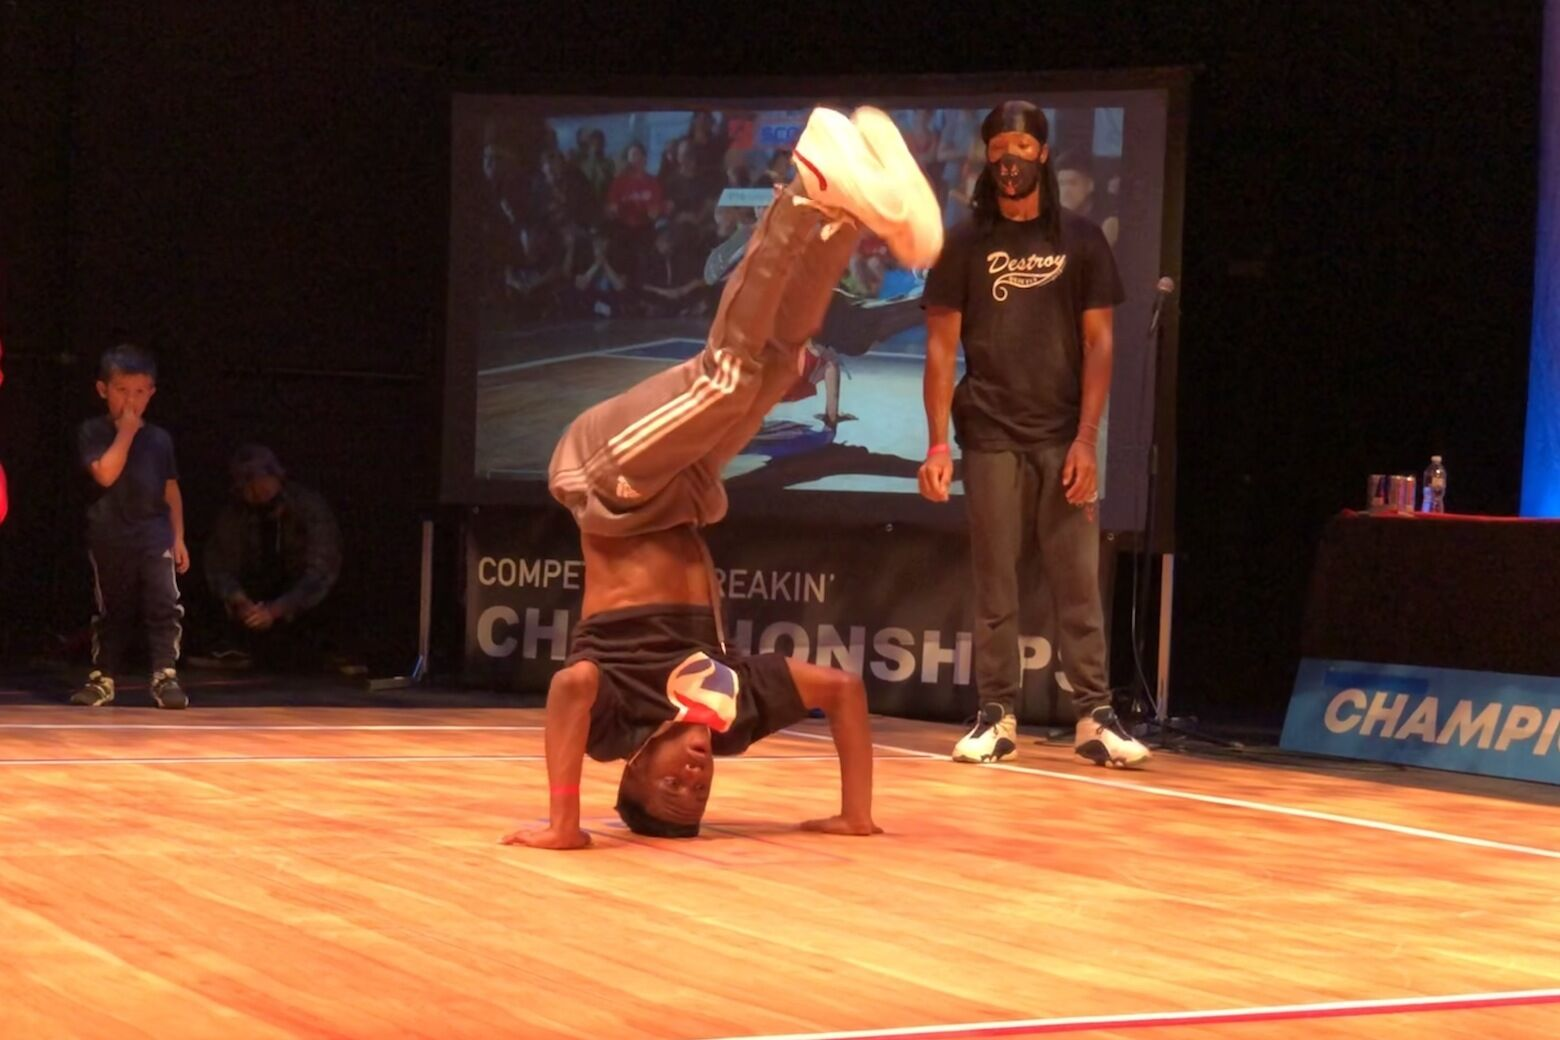 <p>Zak Grabowski of North Carolina competes at the Rock the Box competition in Silver Spring, Maryland. (WTOP/Valerie Bonk)</p>